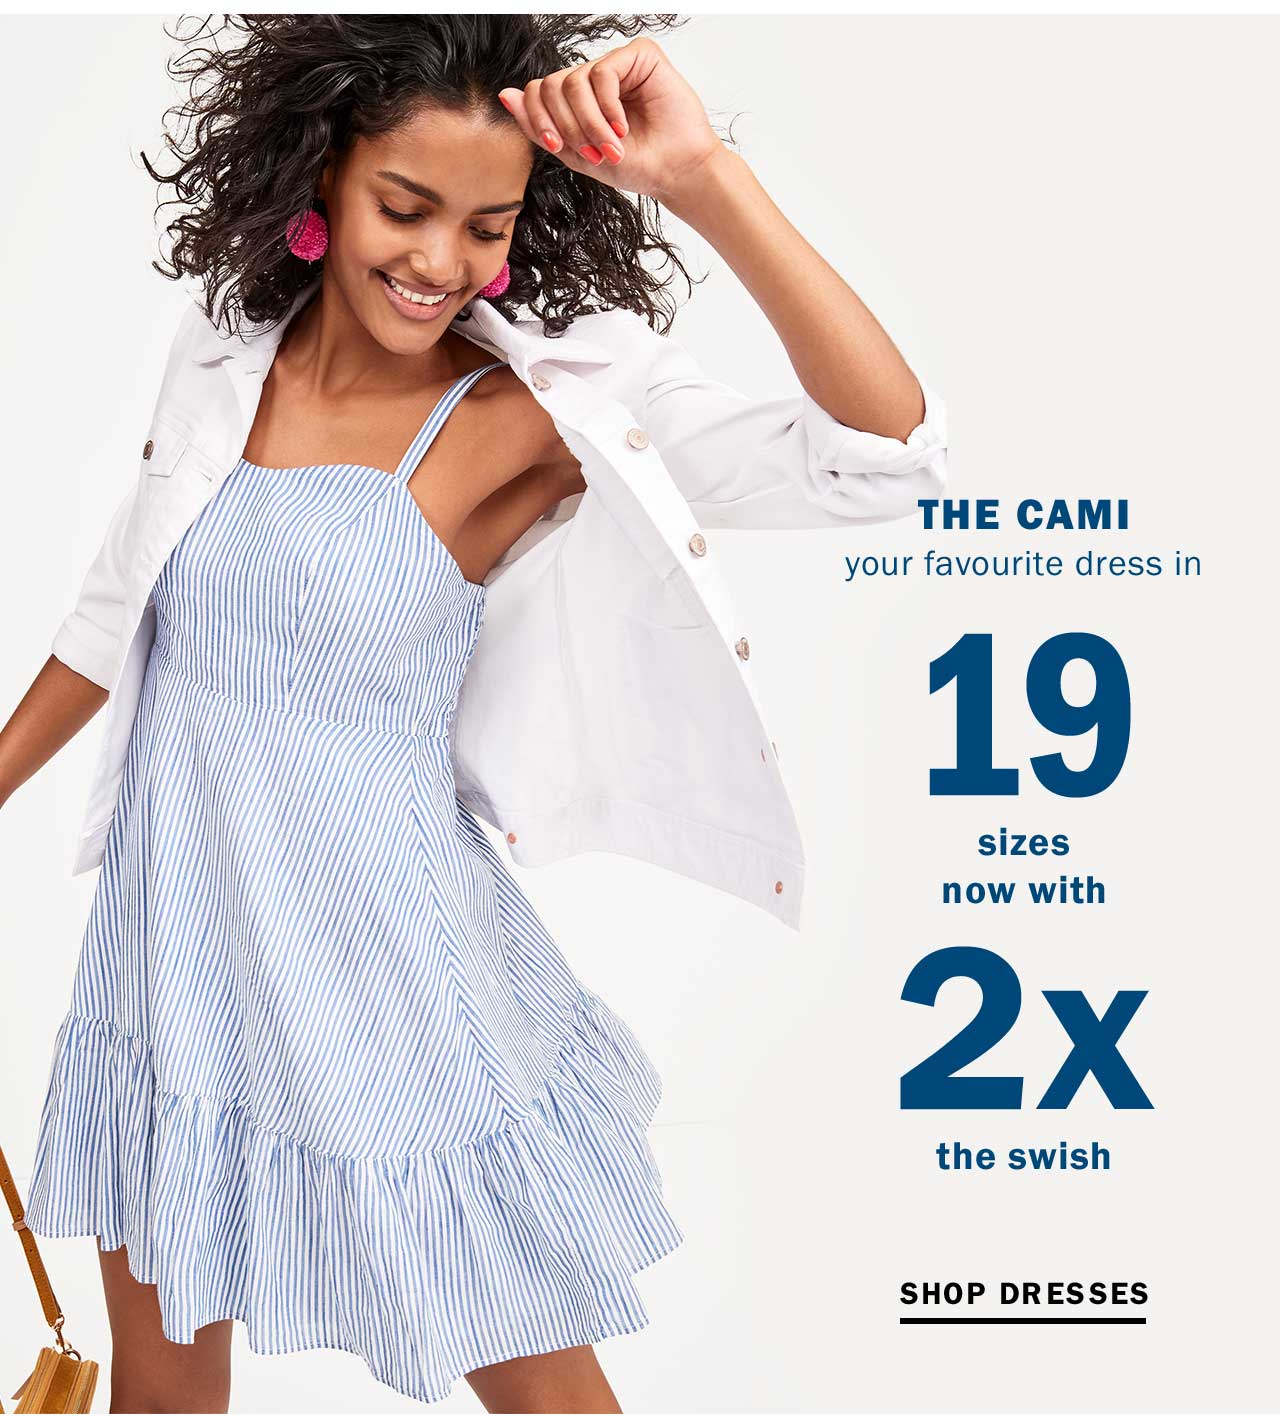 THE CAMI | SHOP DRESSES